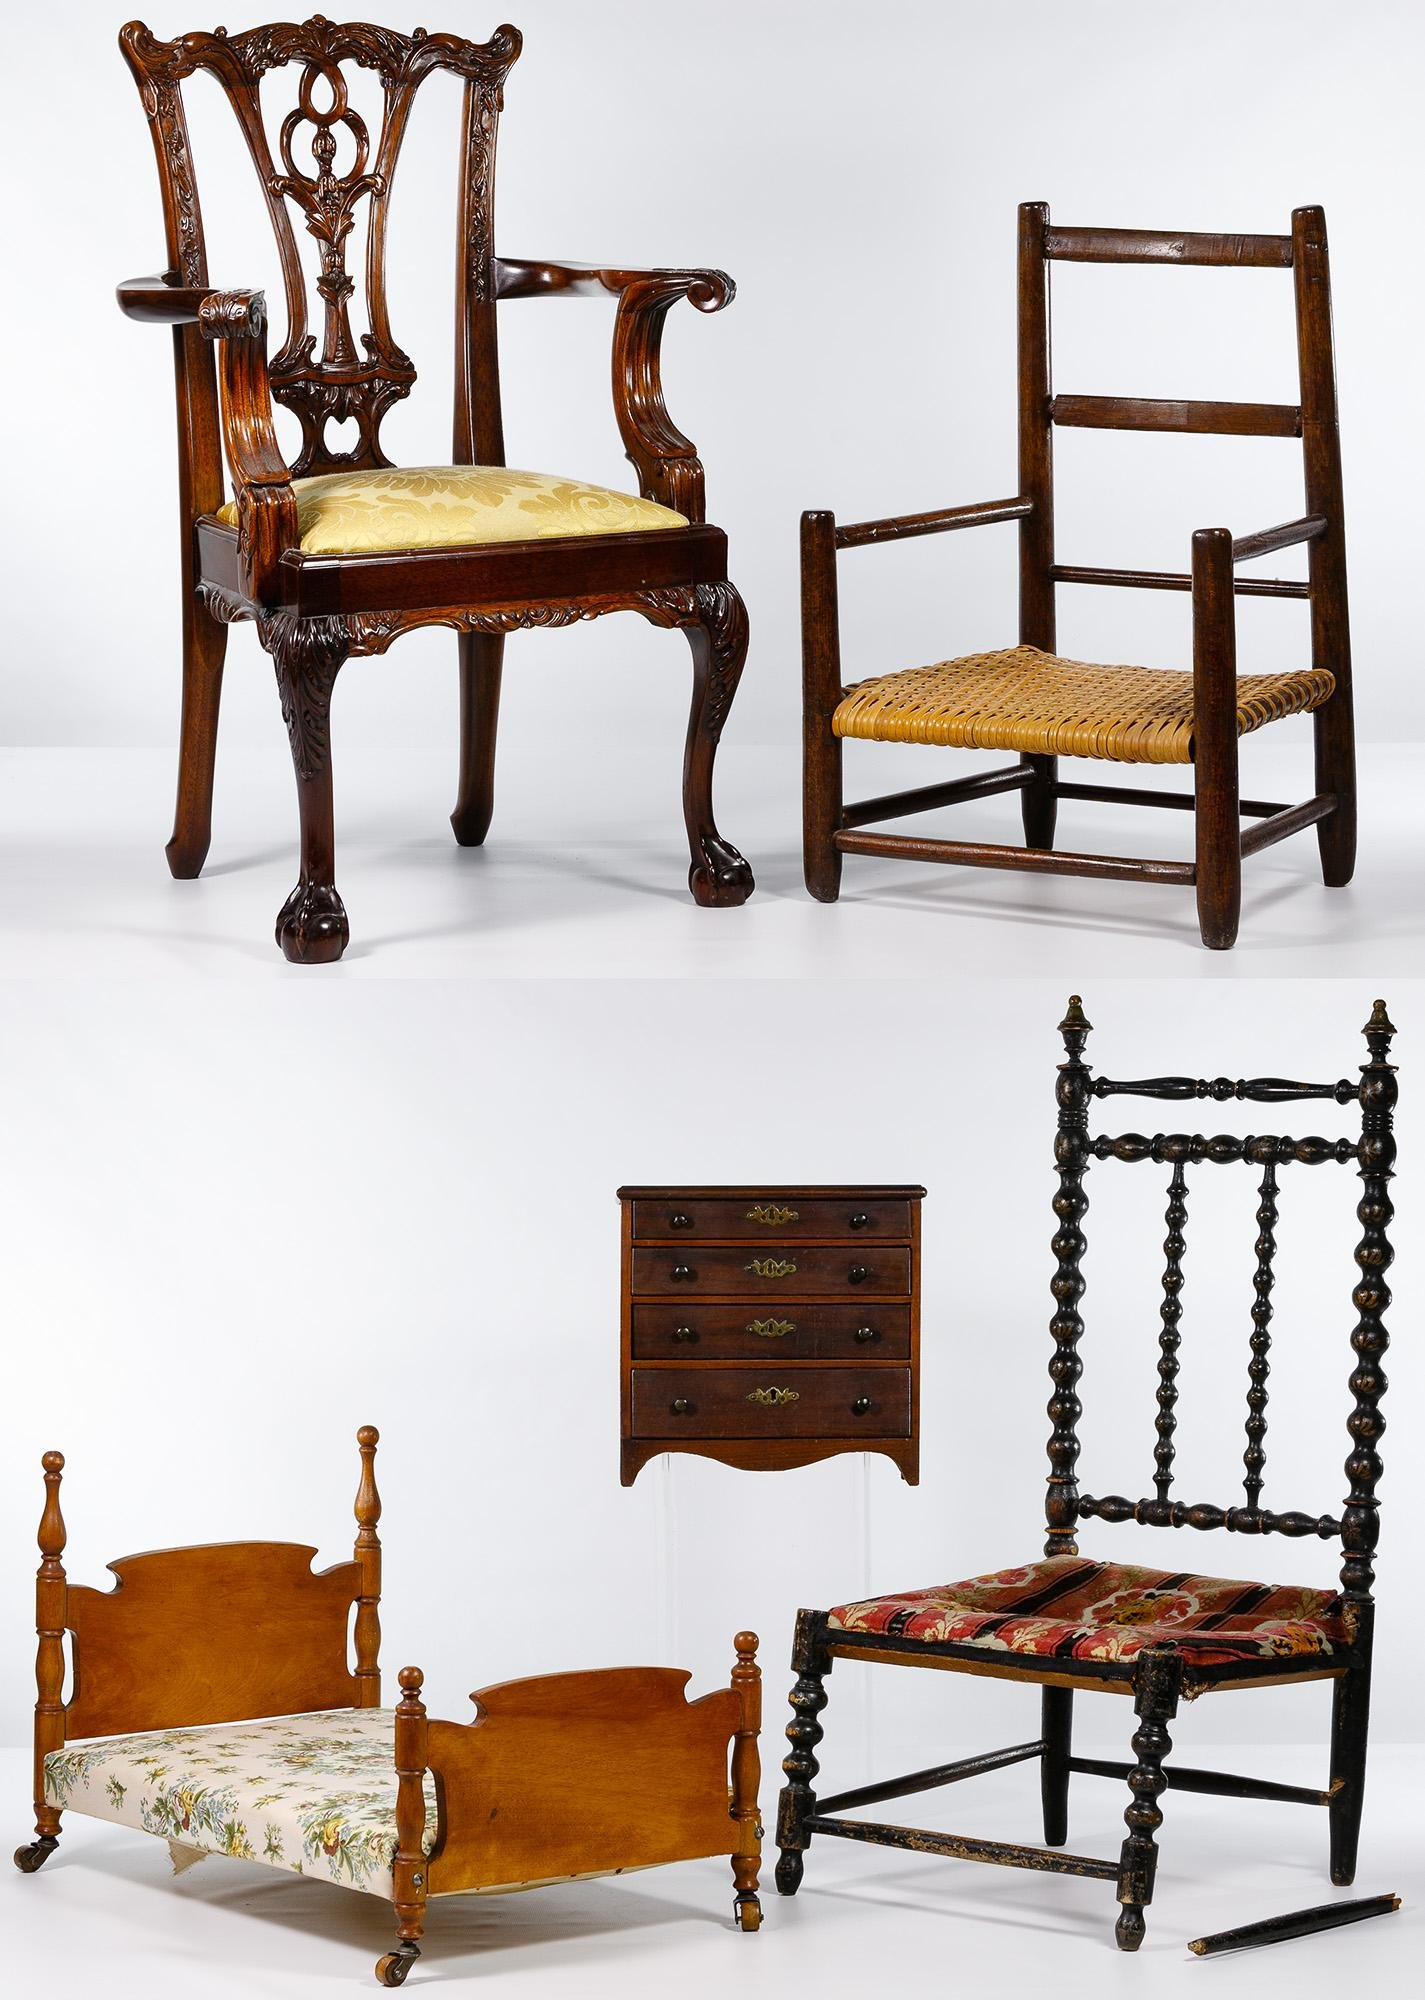 Children Chair and Doll Furniture Assortment